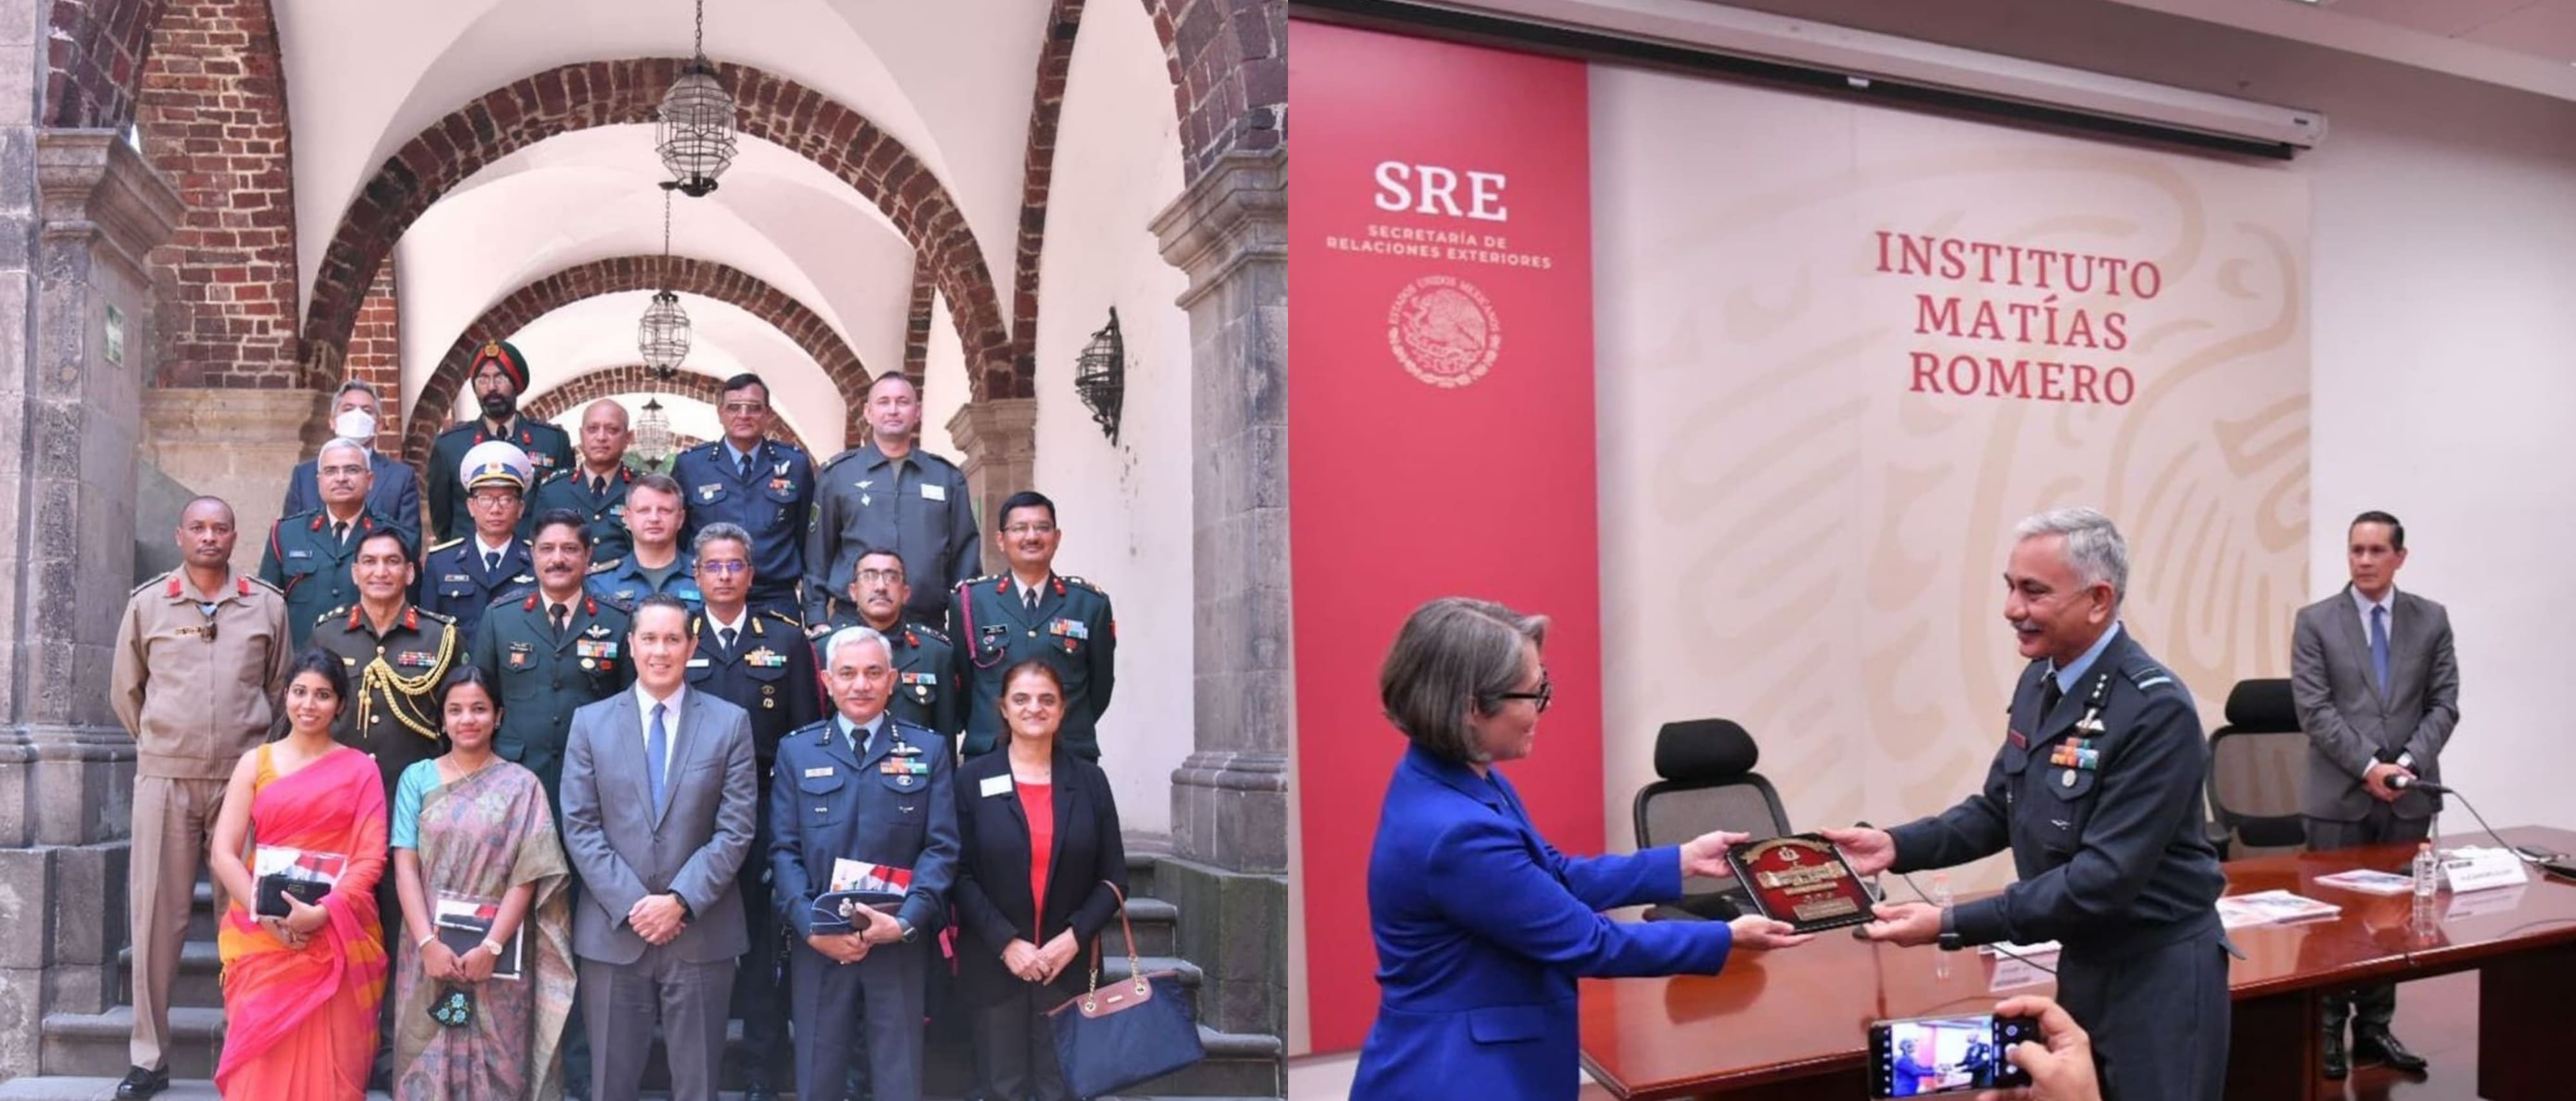 National Defense College (NDC) delegation from India visited the diplomatic training academy of Mexico, Instituto Matias Romero (IMR)